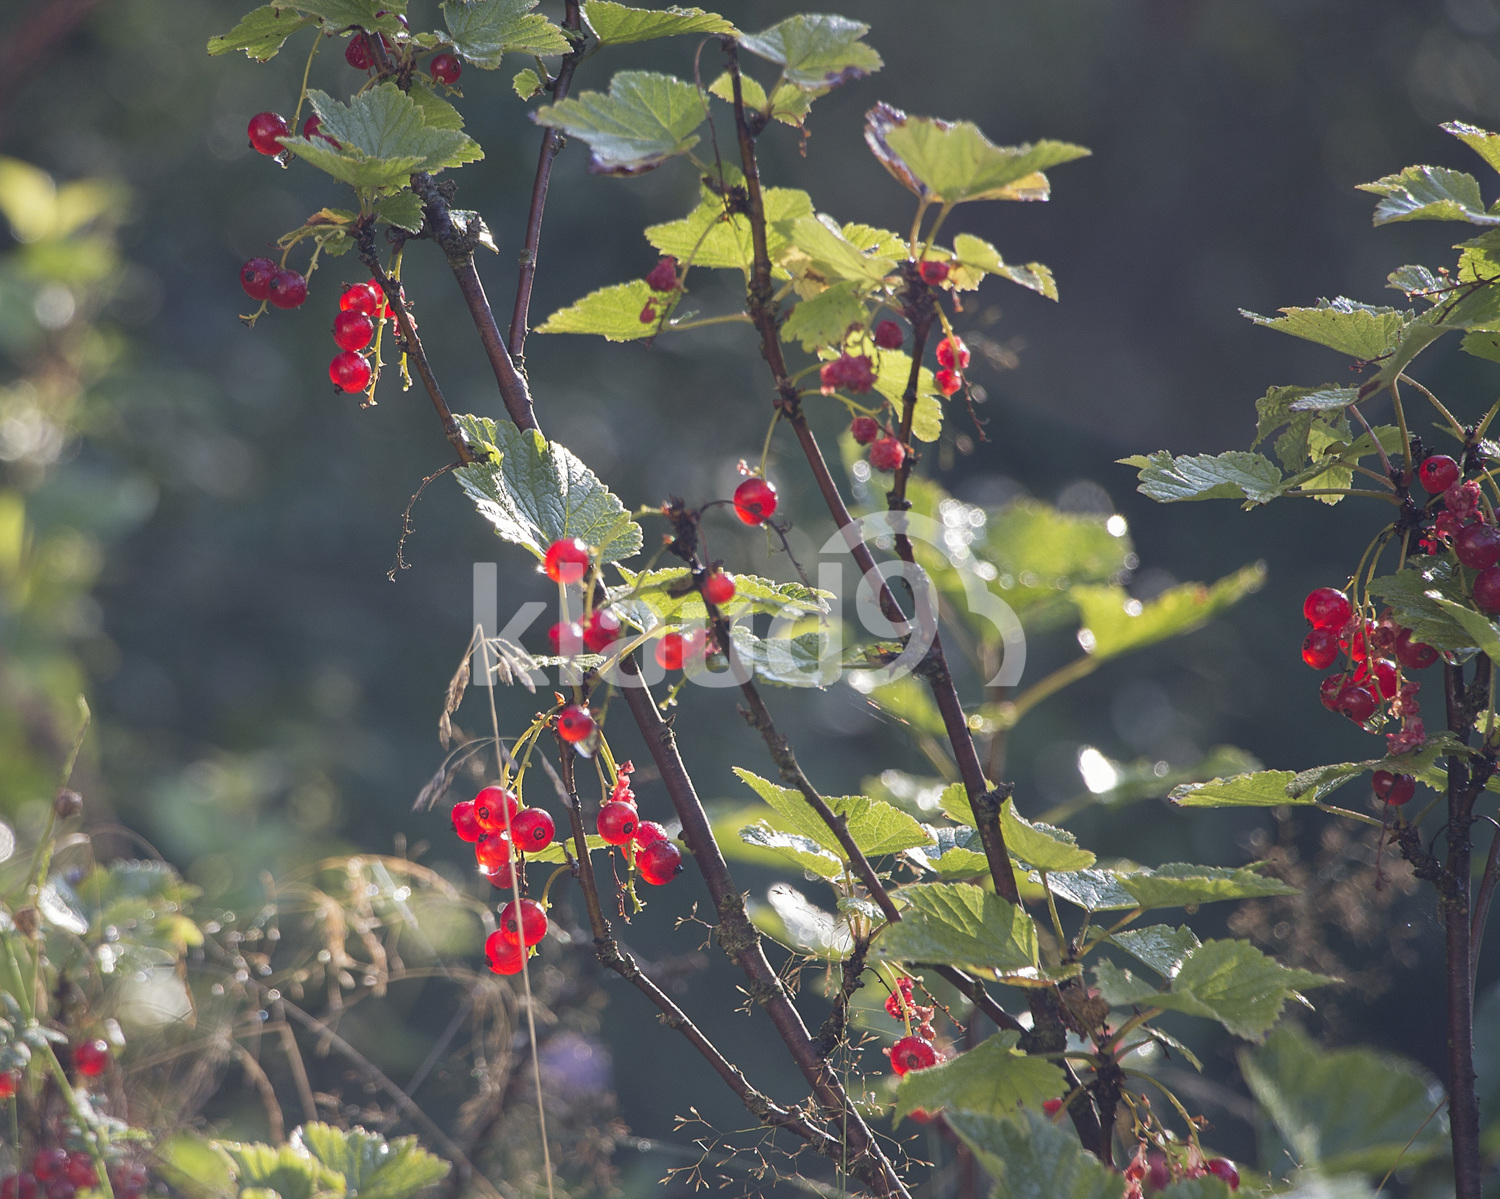 Red currants hanging on a bush in the garden.